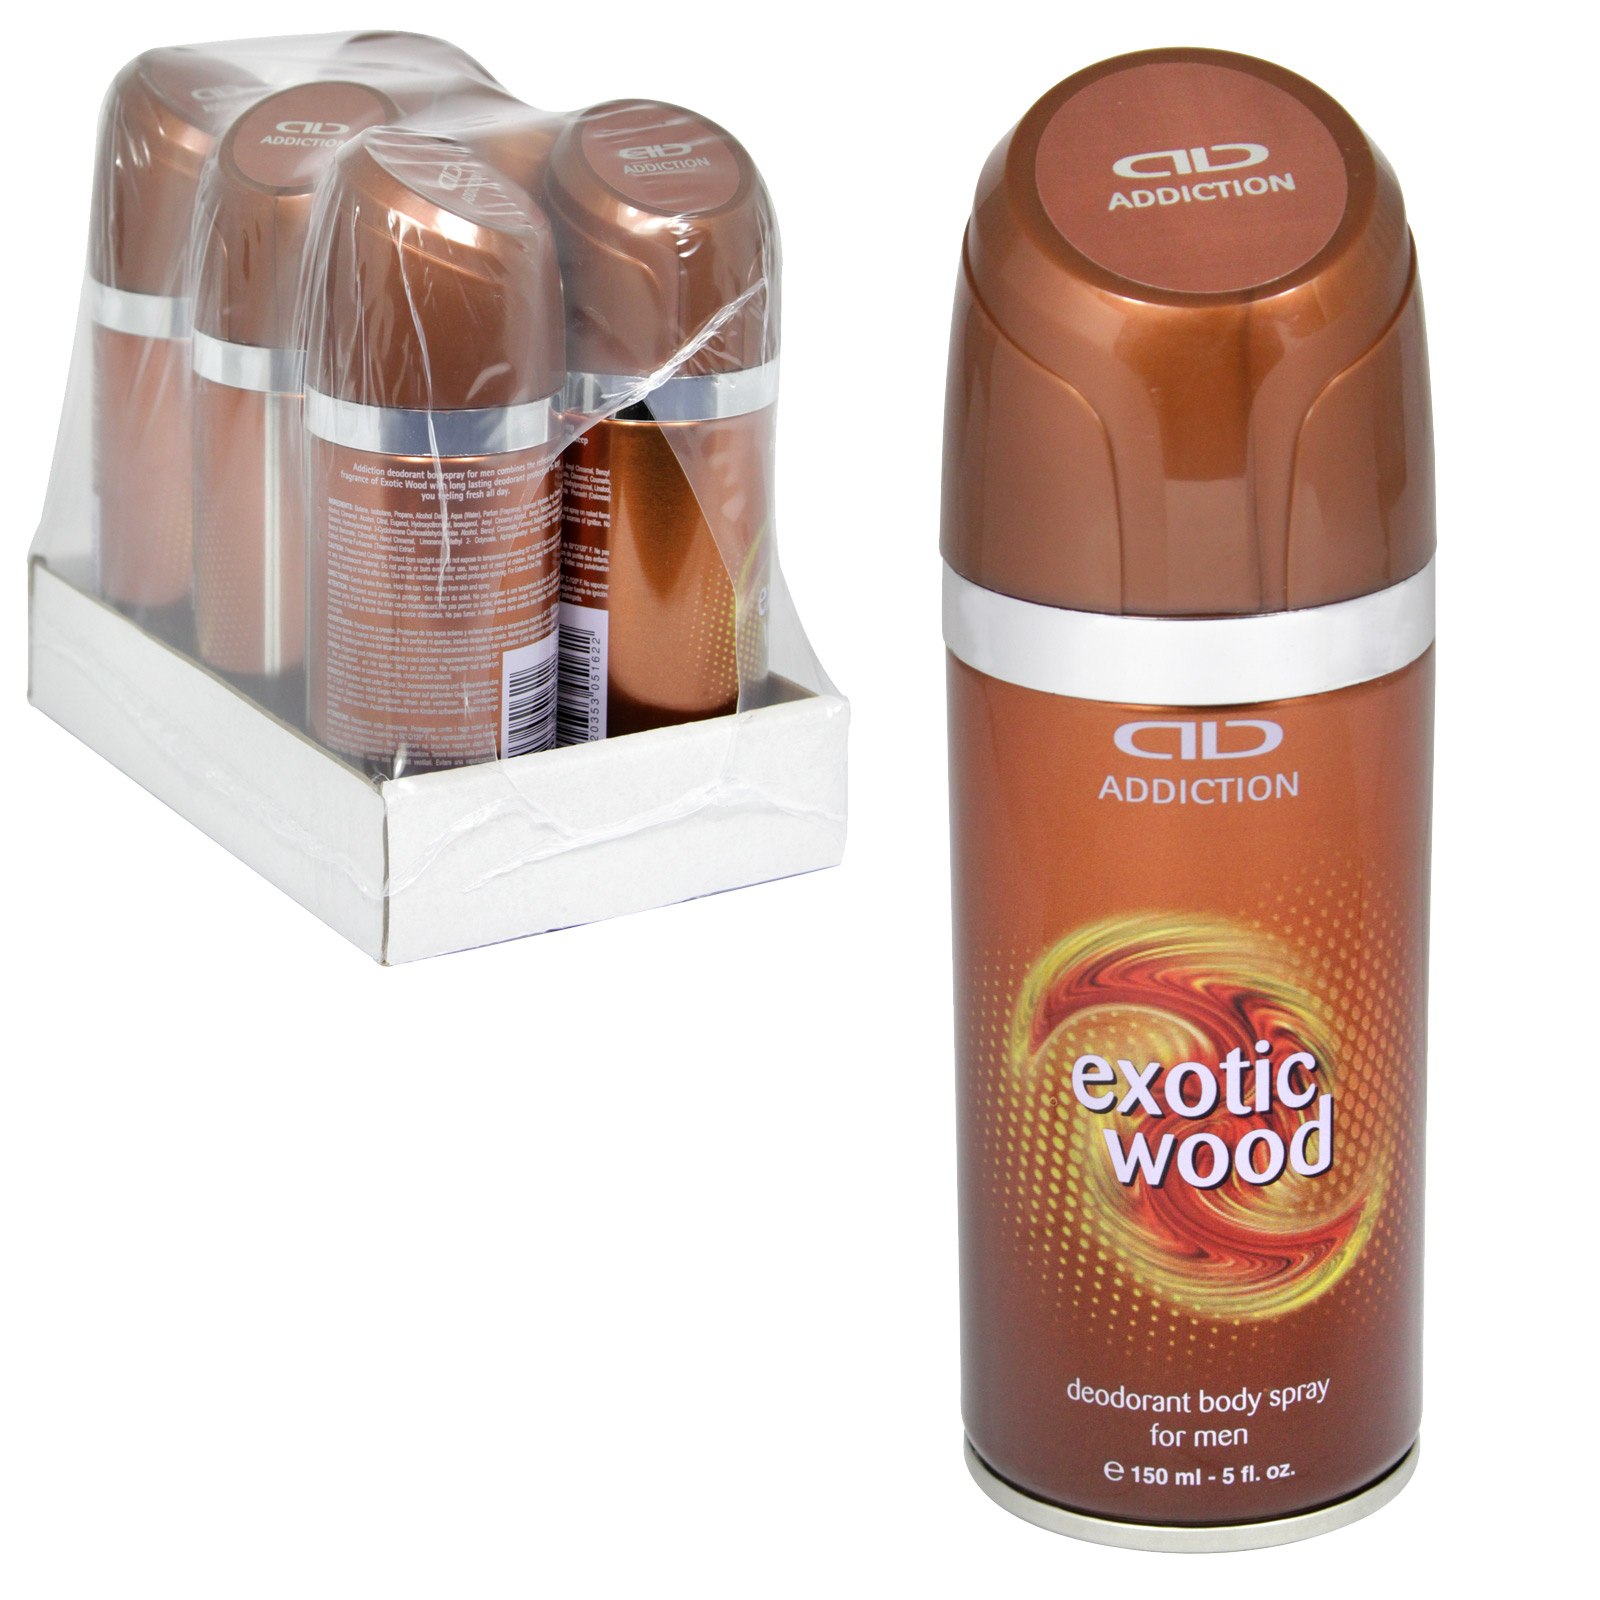 ADDICTION CLASSIC MENS DEO BODY SPRAY 150ML EXOTIC WOOD X6